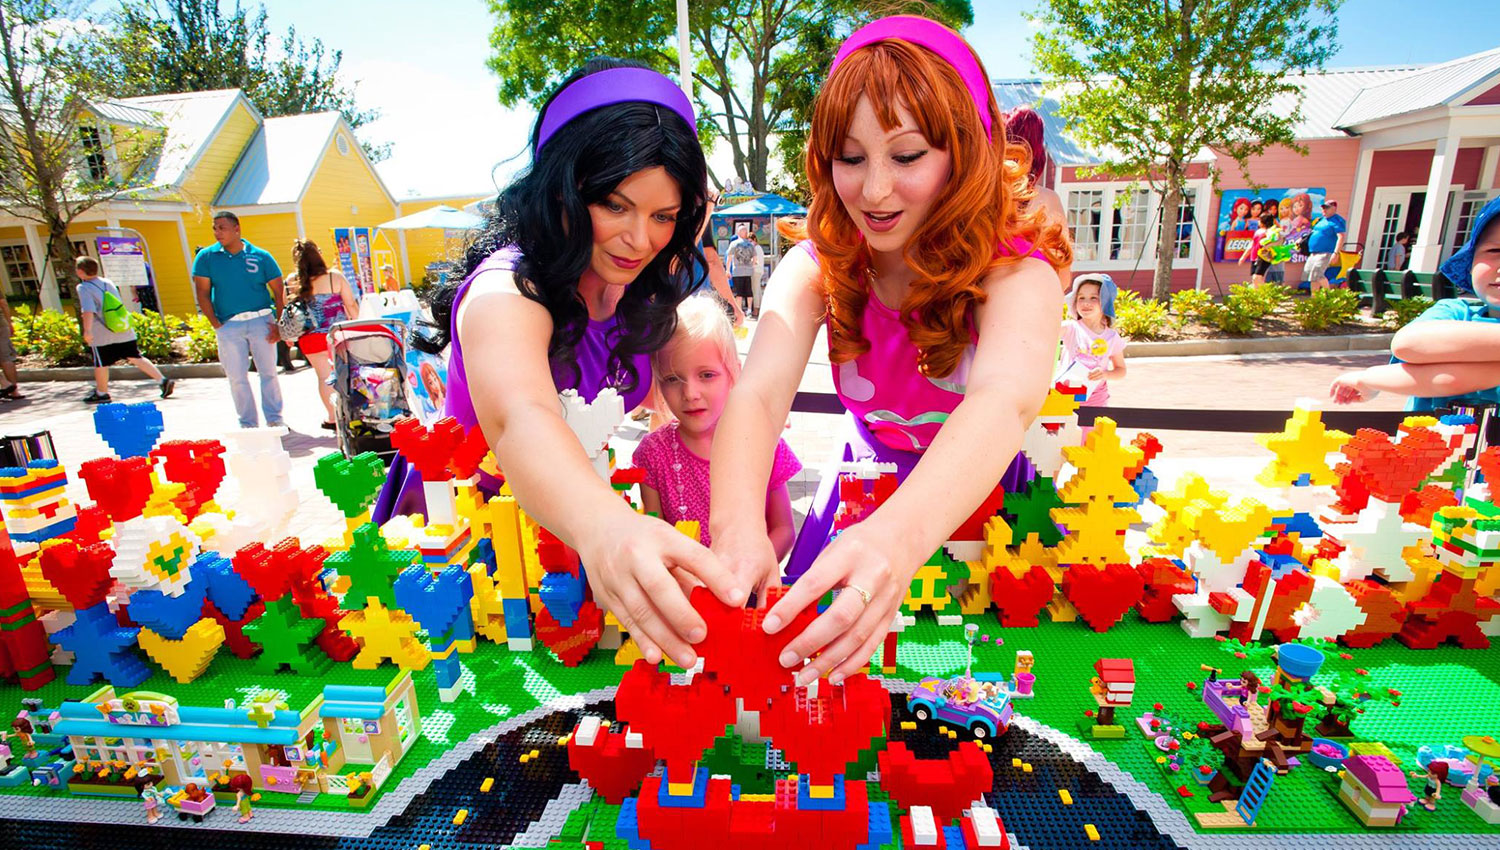 blond child watches lego being built by two women